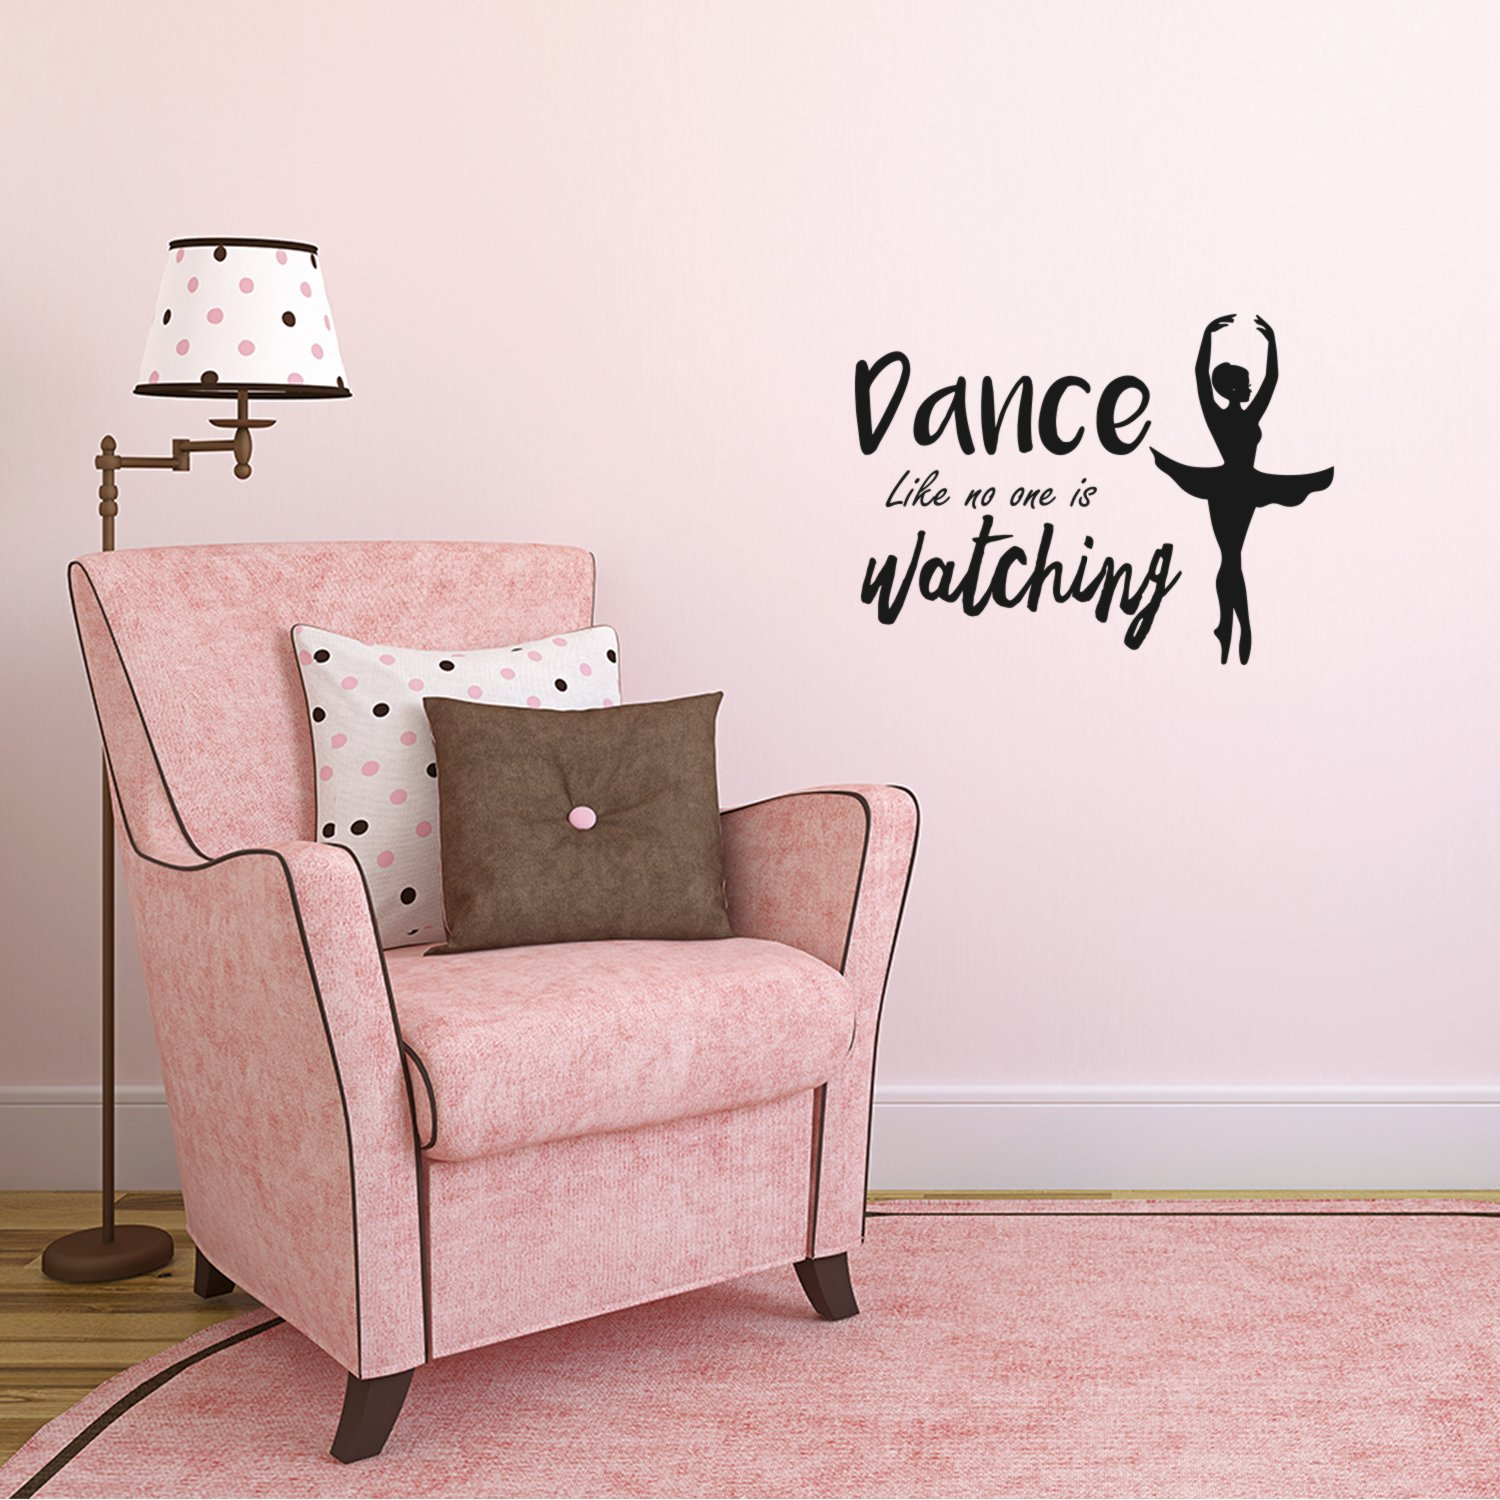 Dance Like No One is Watching - Inspirational Quote Wall Art Vinyl Decal - 16'' x 22'' Decoration Vinyl Sticker - Motivational Life Quotes Wall Decal - Ballerina Wall Decor Stickers